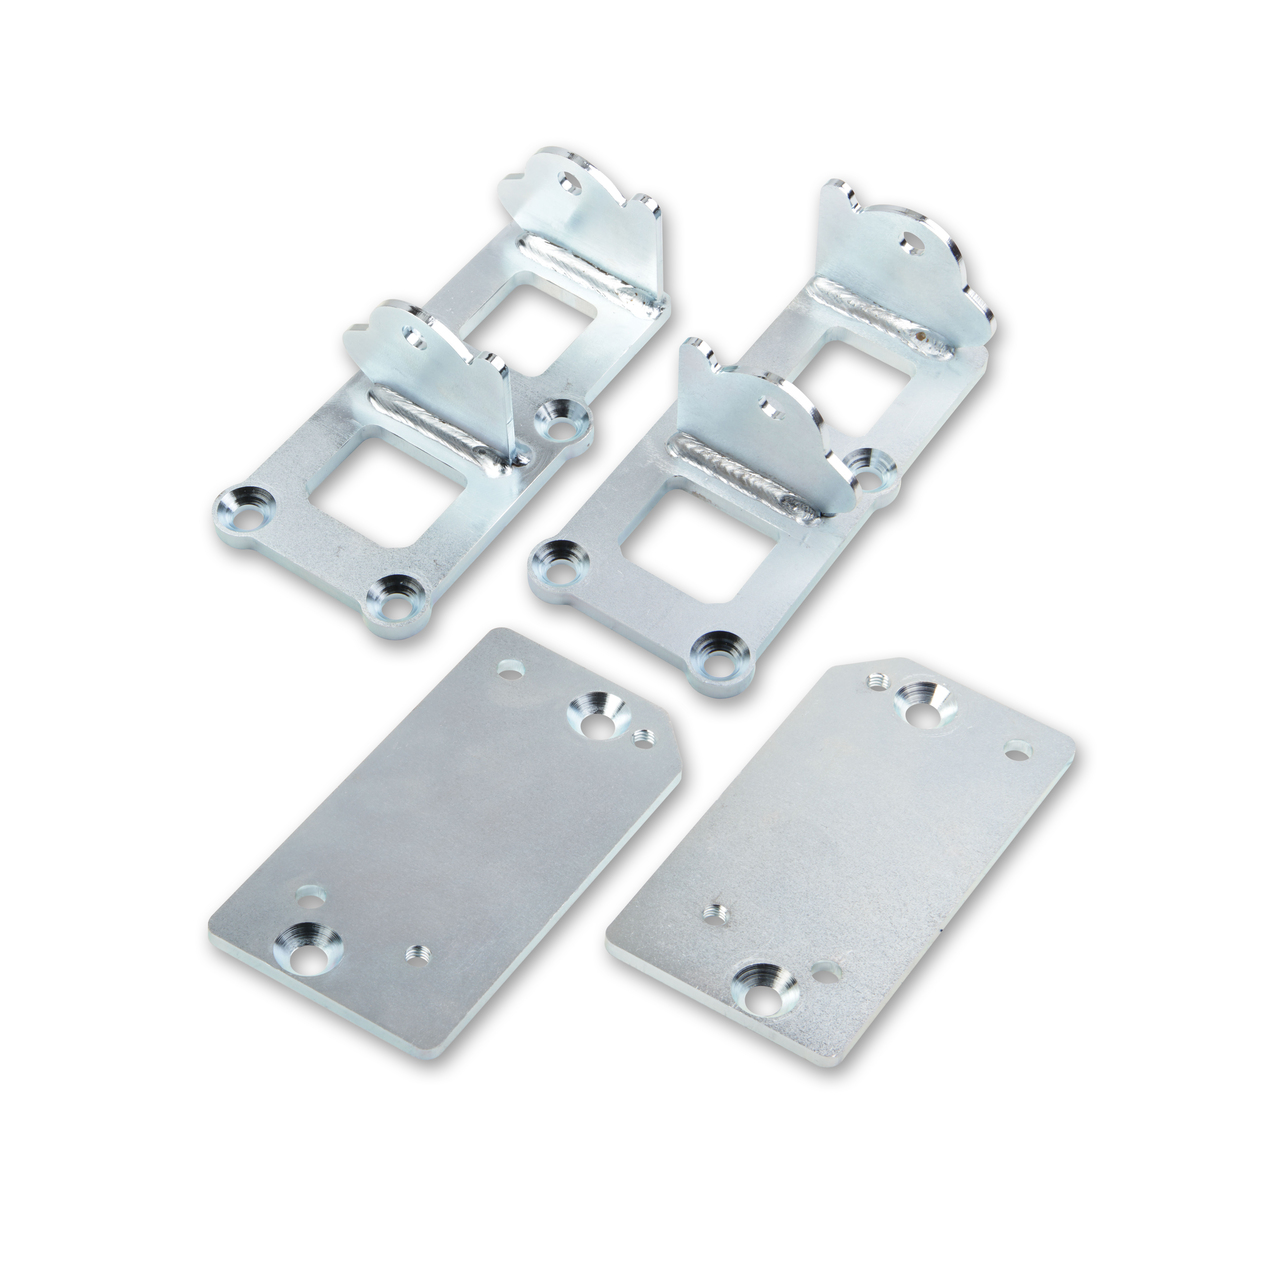 HOOKER MOTOR MOUNTS 1967-69 1st-Gen GM F-body/ 1968-74 X-body LS-Swap Engine Mount Brackets